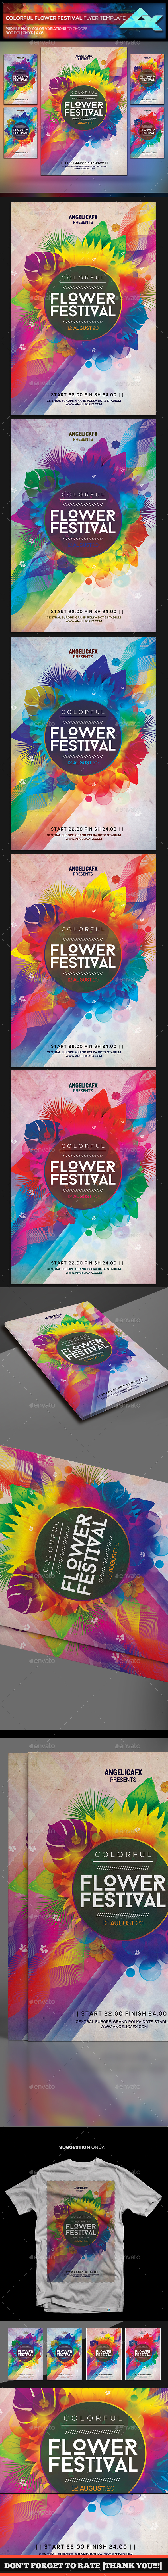 Colorful Flower Festival Flyer Template - Events Flyers